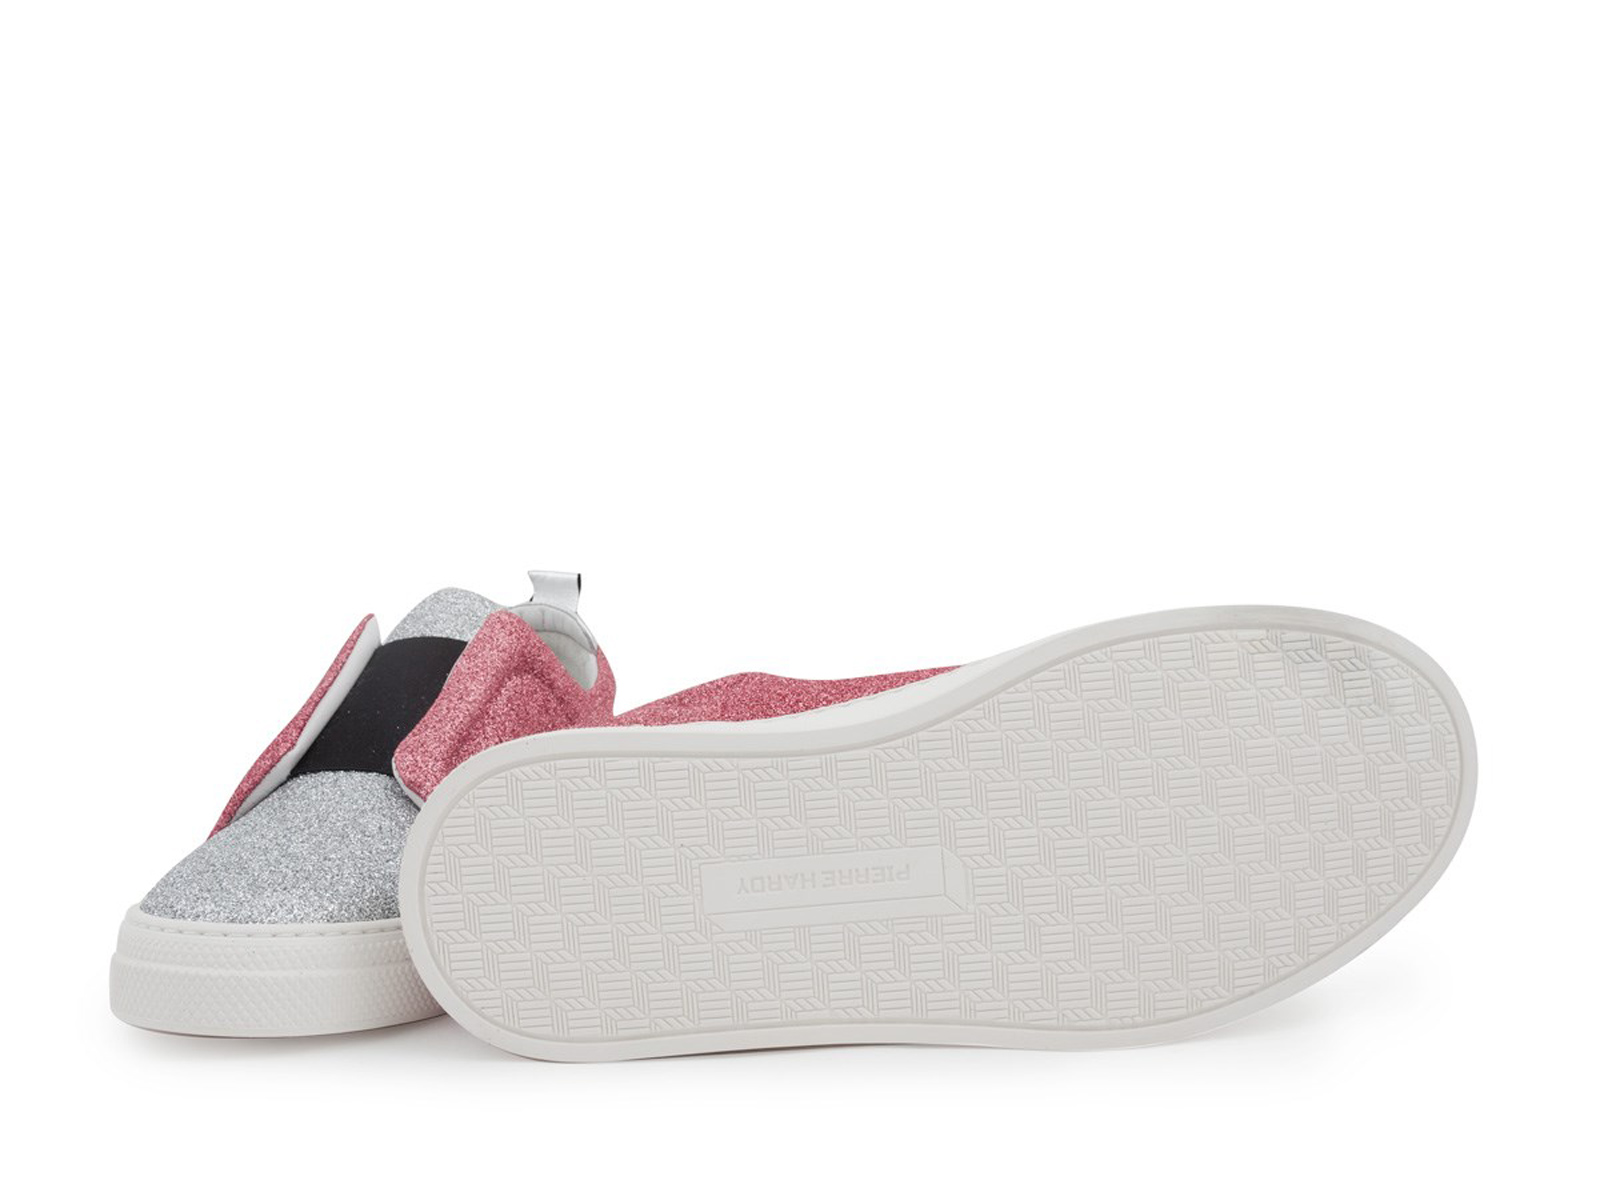 Pierre Hardy slip-ons fashion trainers trainers trainers luxury shoes in silver pink glitter 5e5f1c